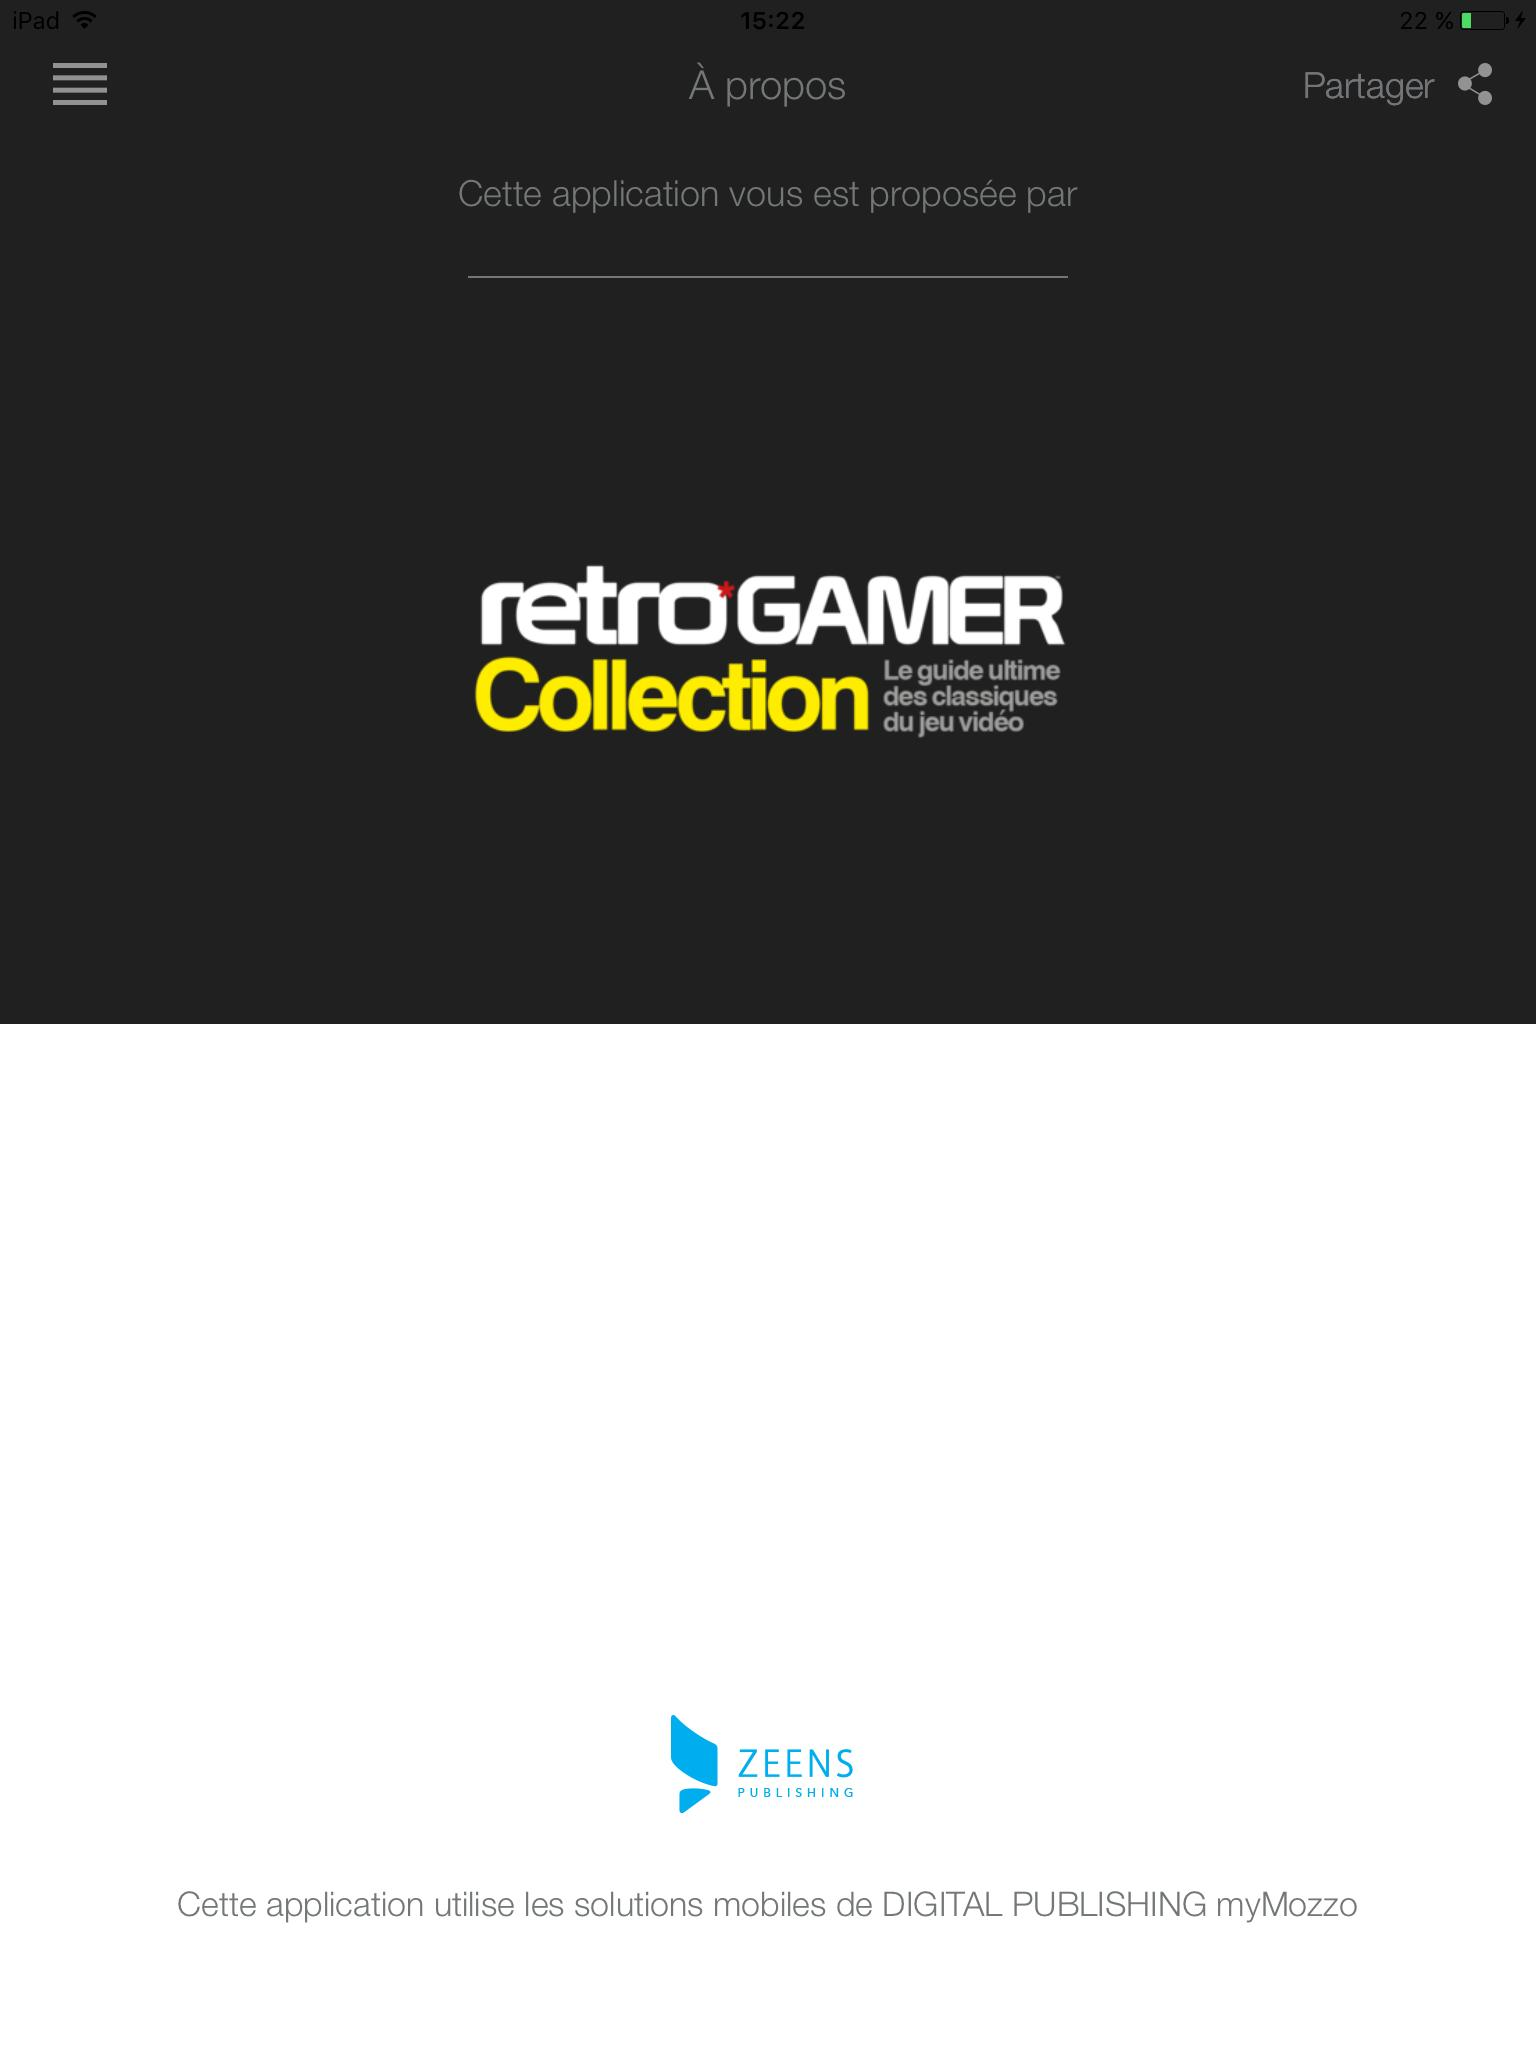 Retro Gamer for Android - APK Download